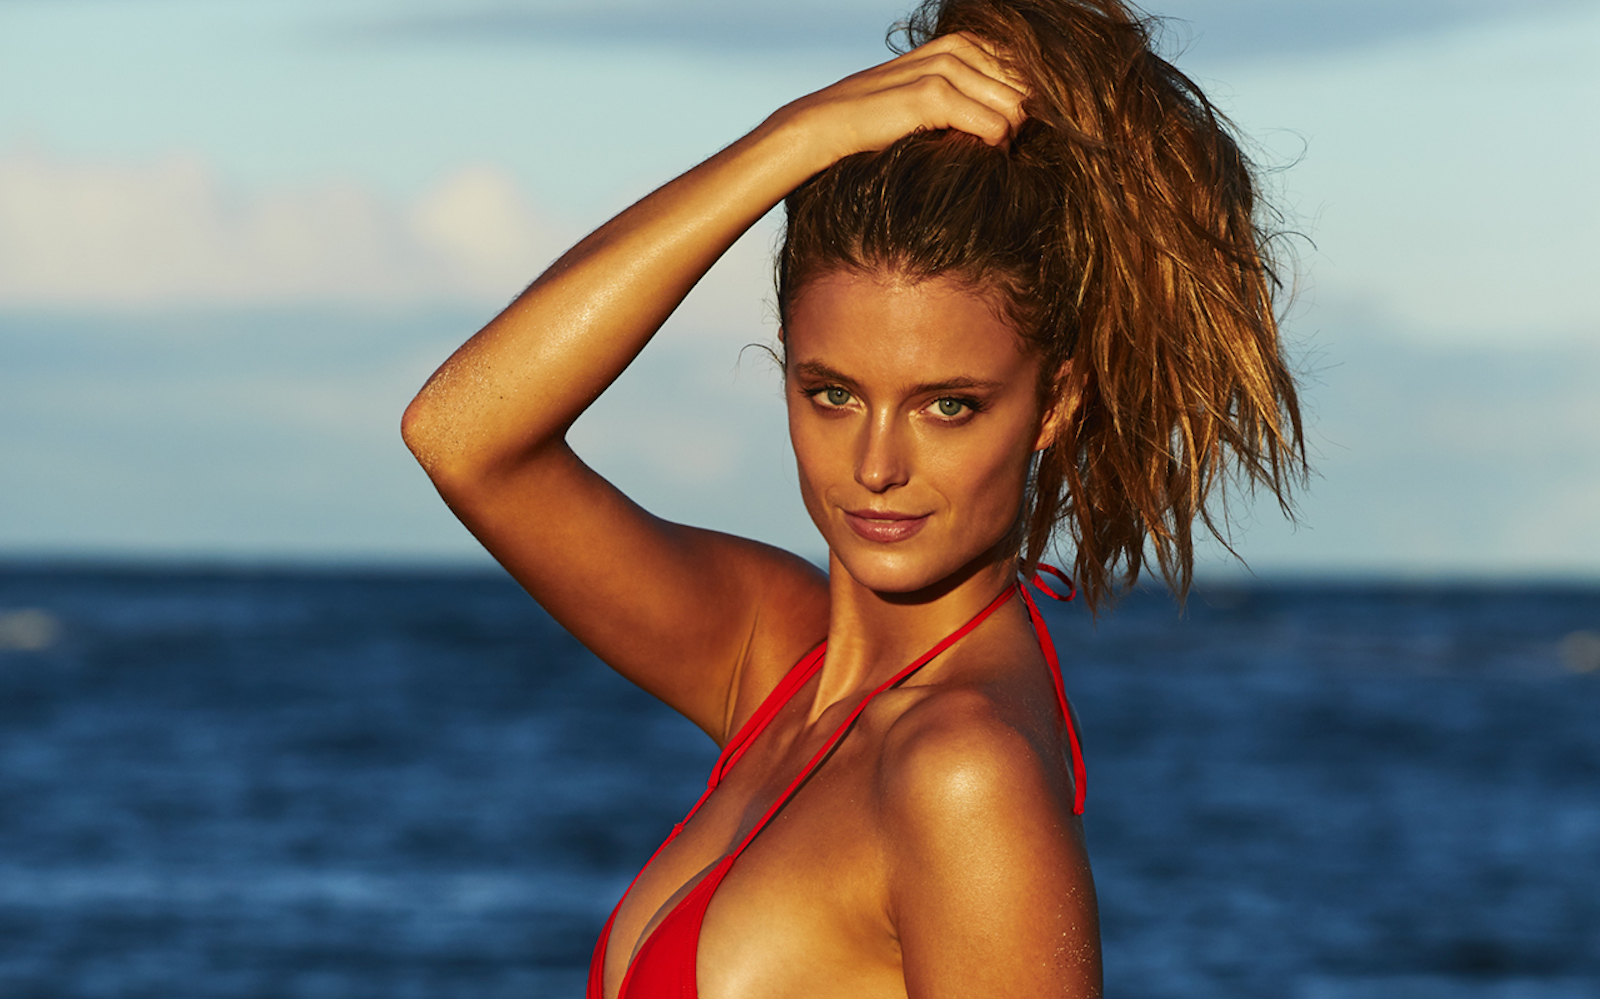 Model Kate Bock in the 2018 Sports Illustrated Swimsuit Issue